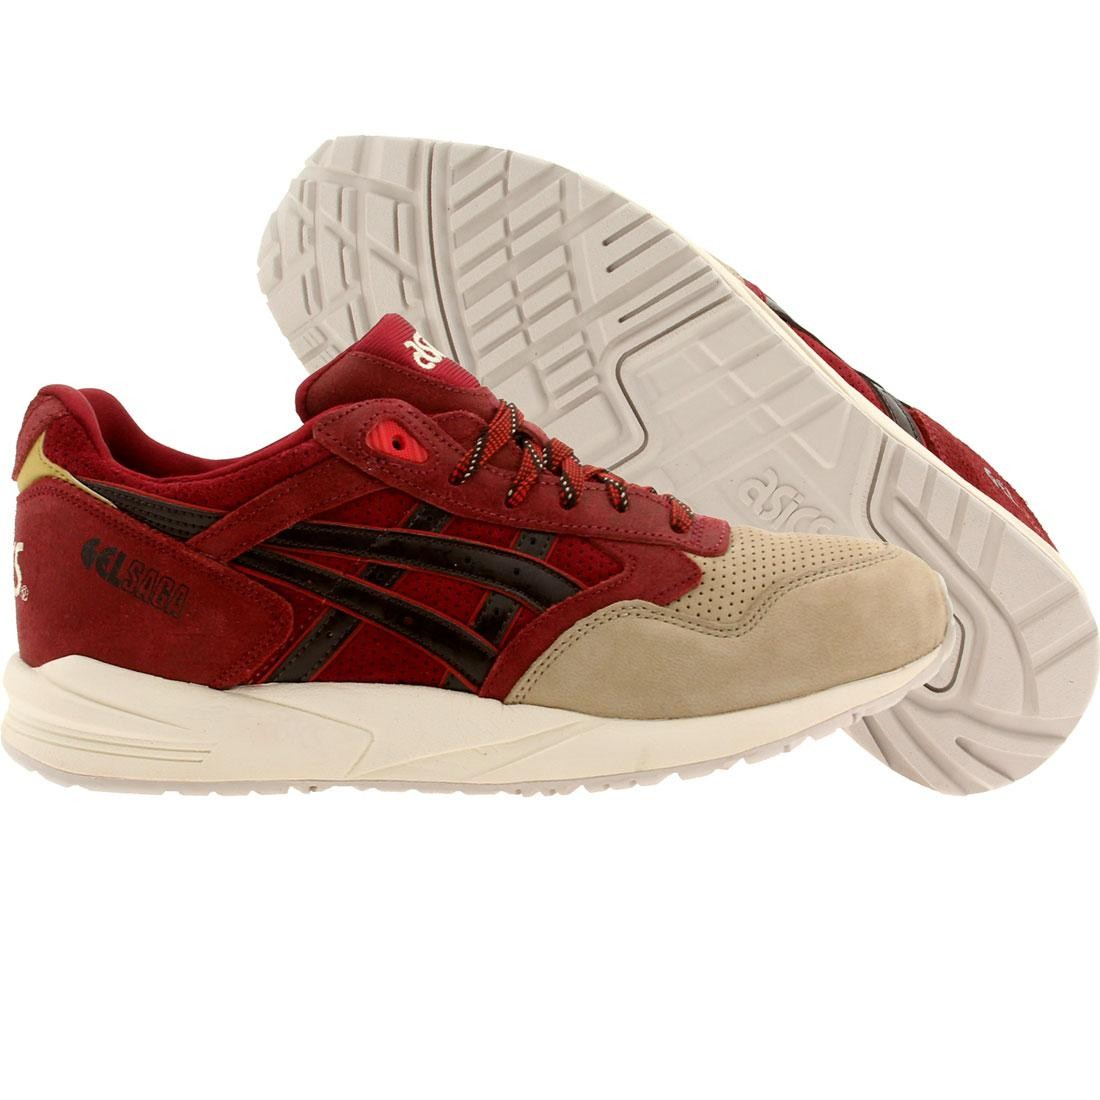 Christmas Dark Santa Saga Packburgundy Tiger Men Gel Brown Asics EDIeHYbW29